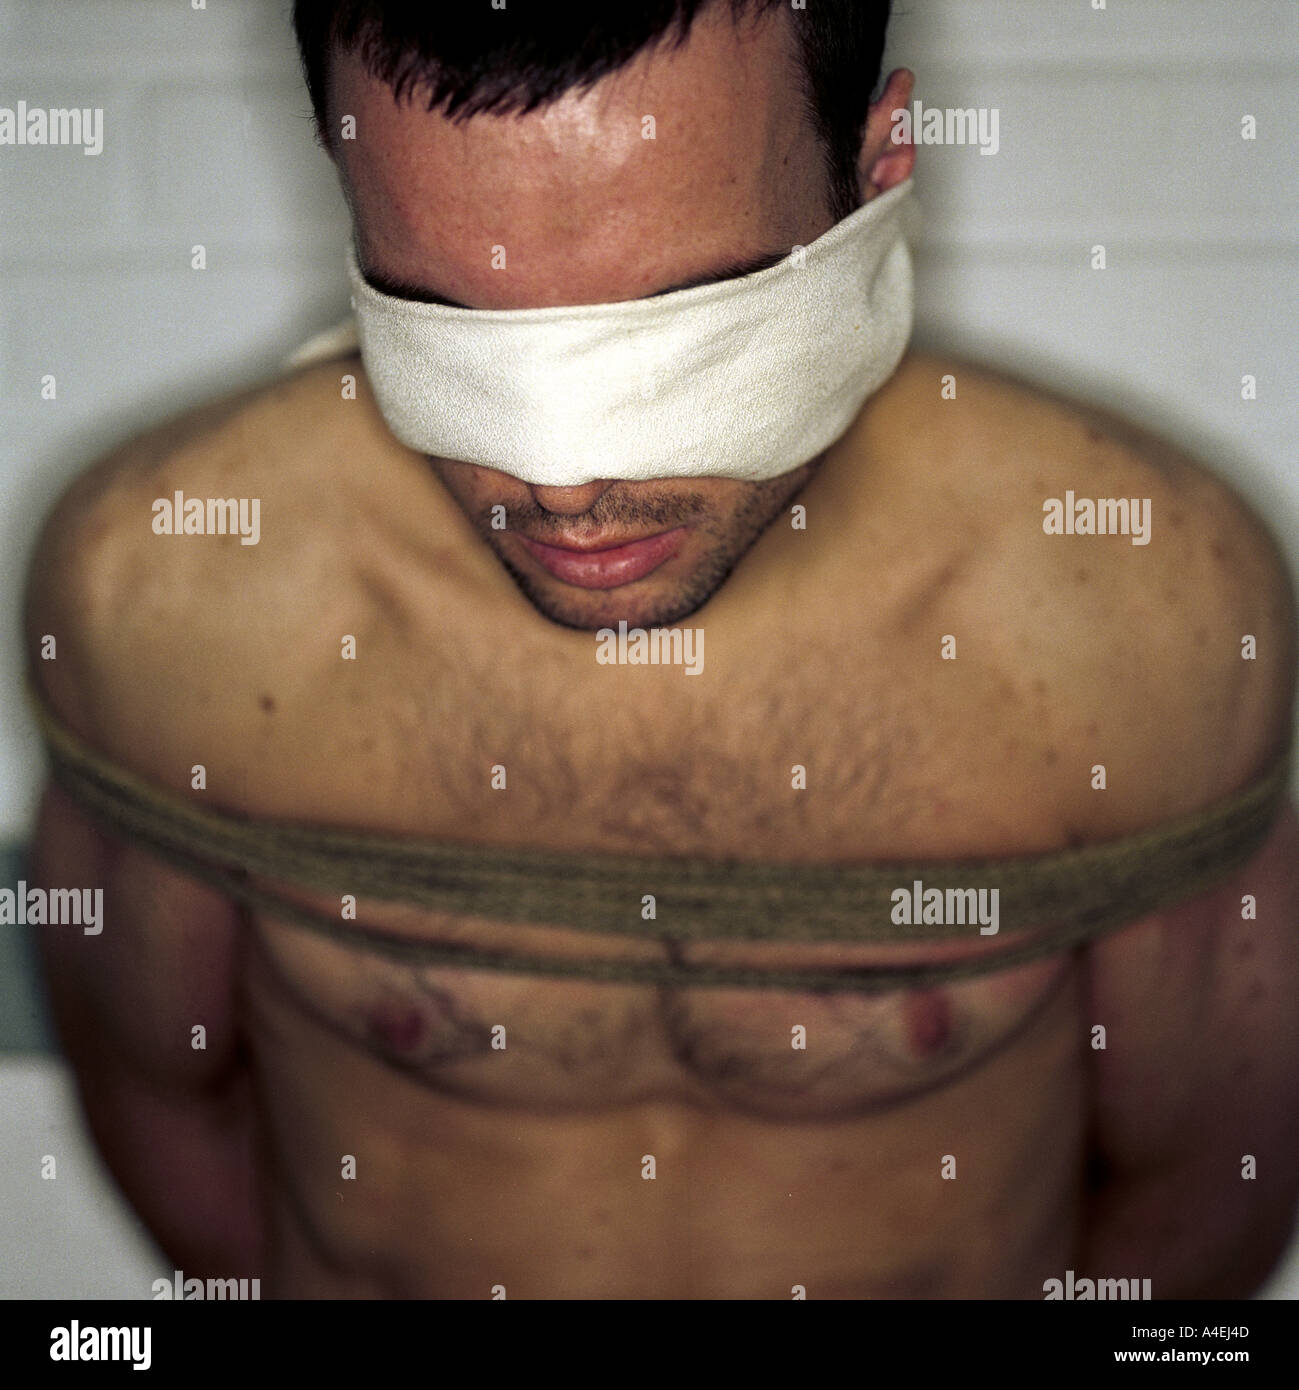 interrogation and torture posed by model - Stock Image